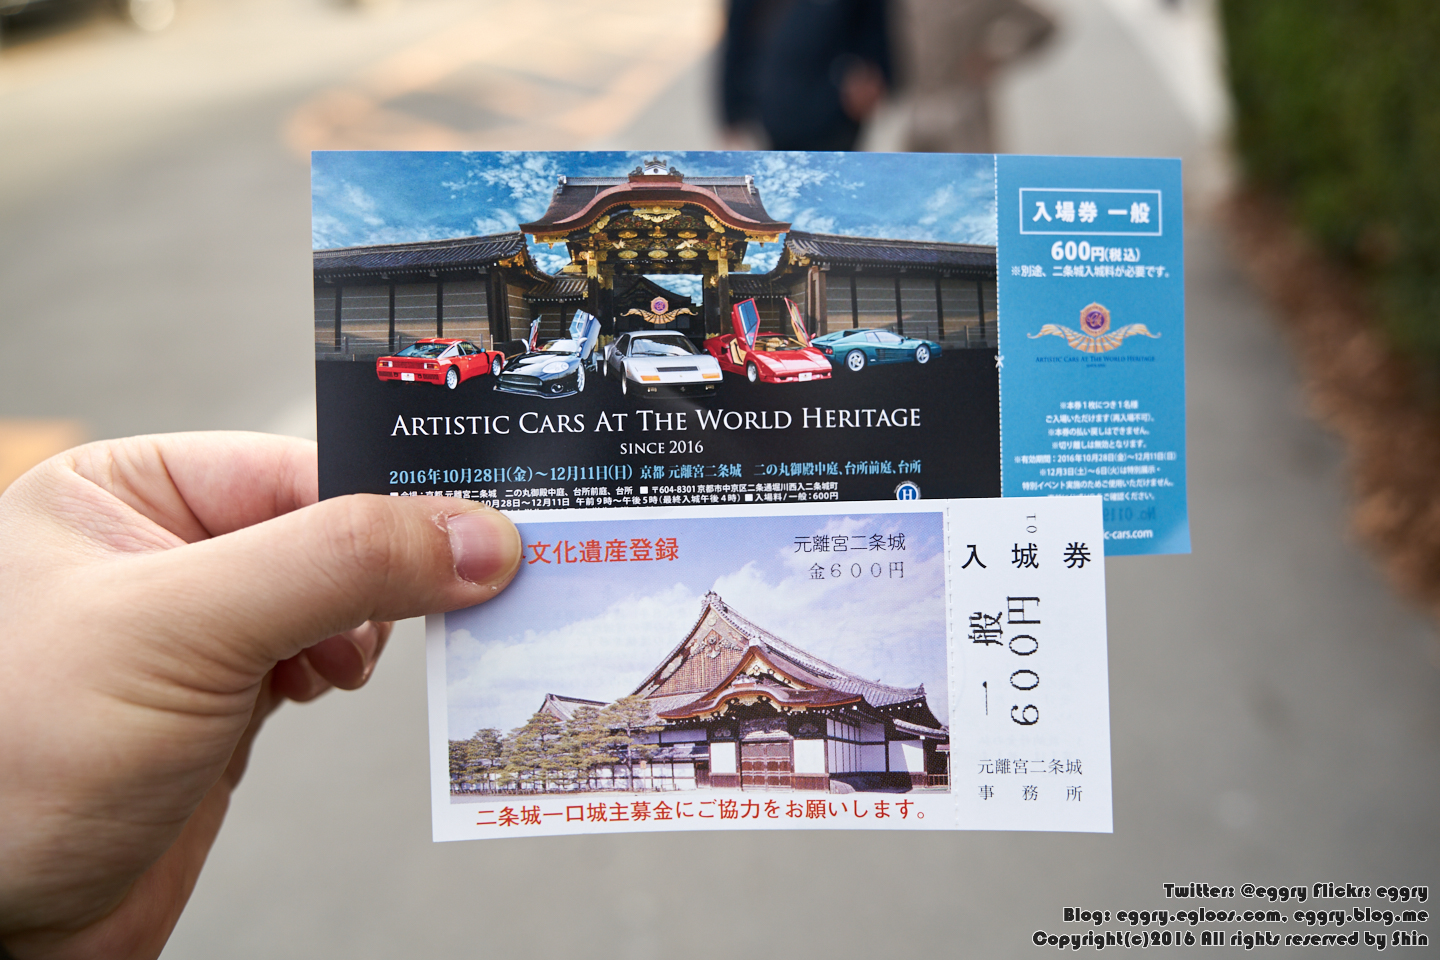 Artistic Cars at the World Heritage - 니조 성을..